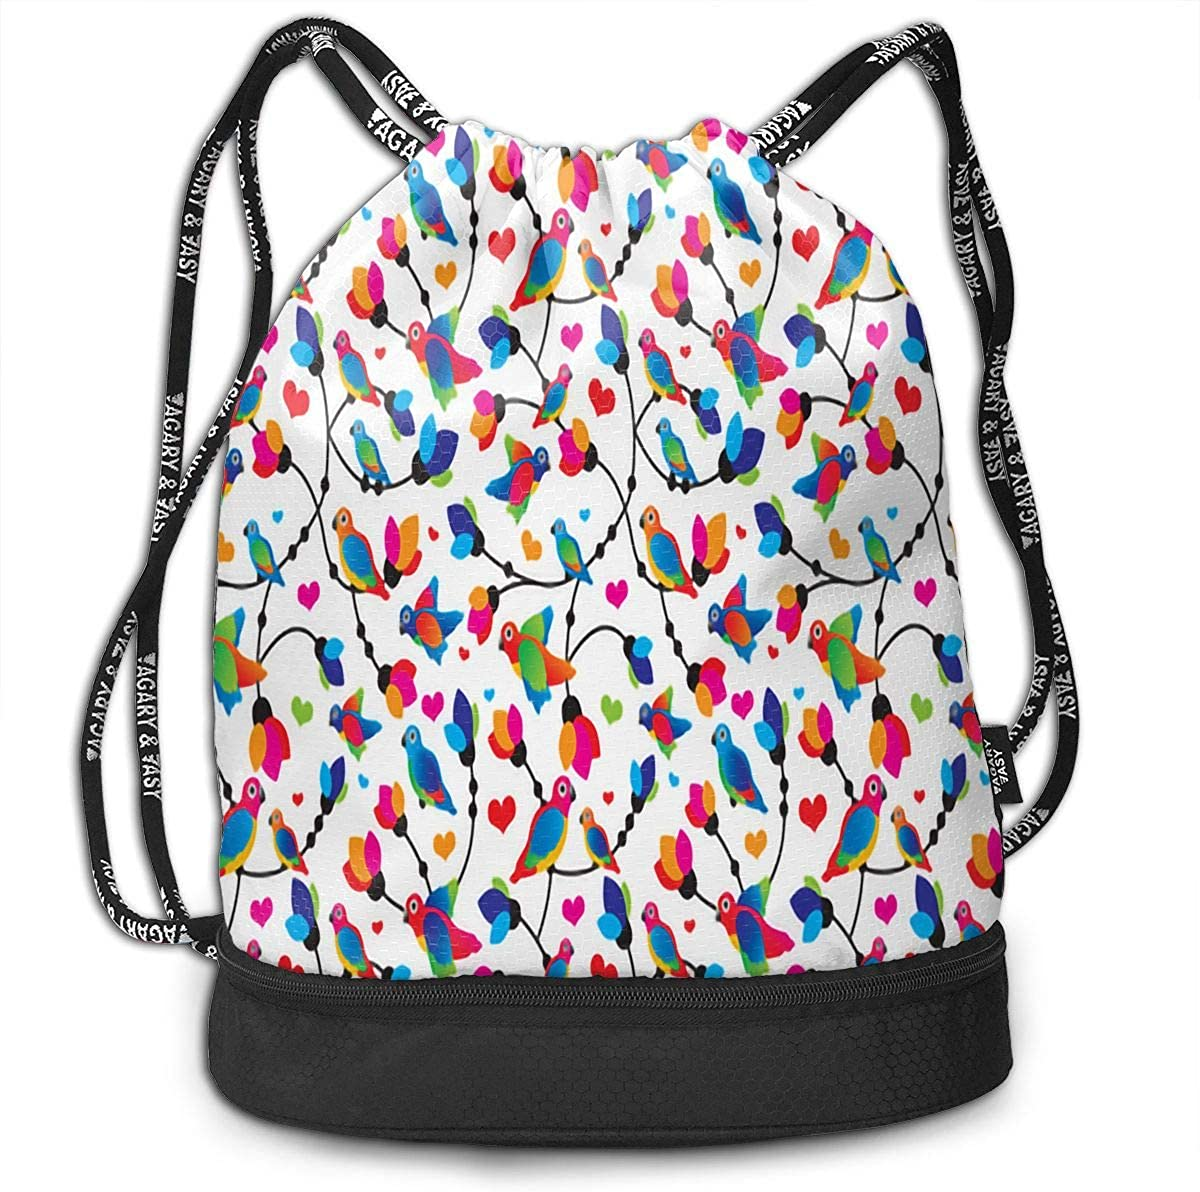 Drawstring Backpack Parrot Bags